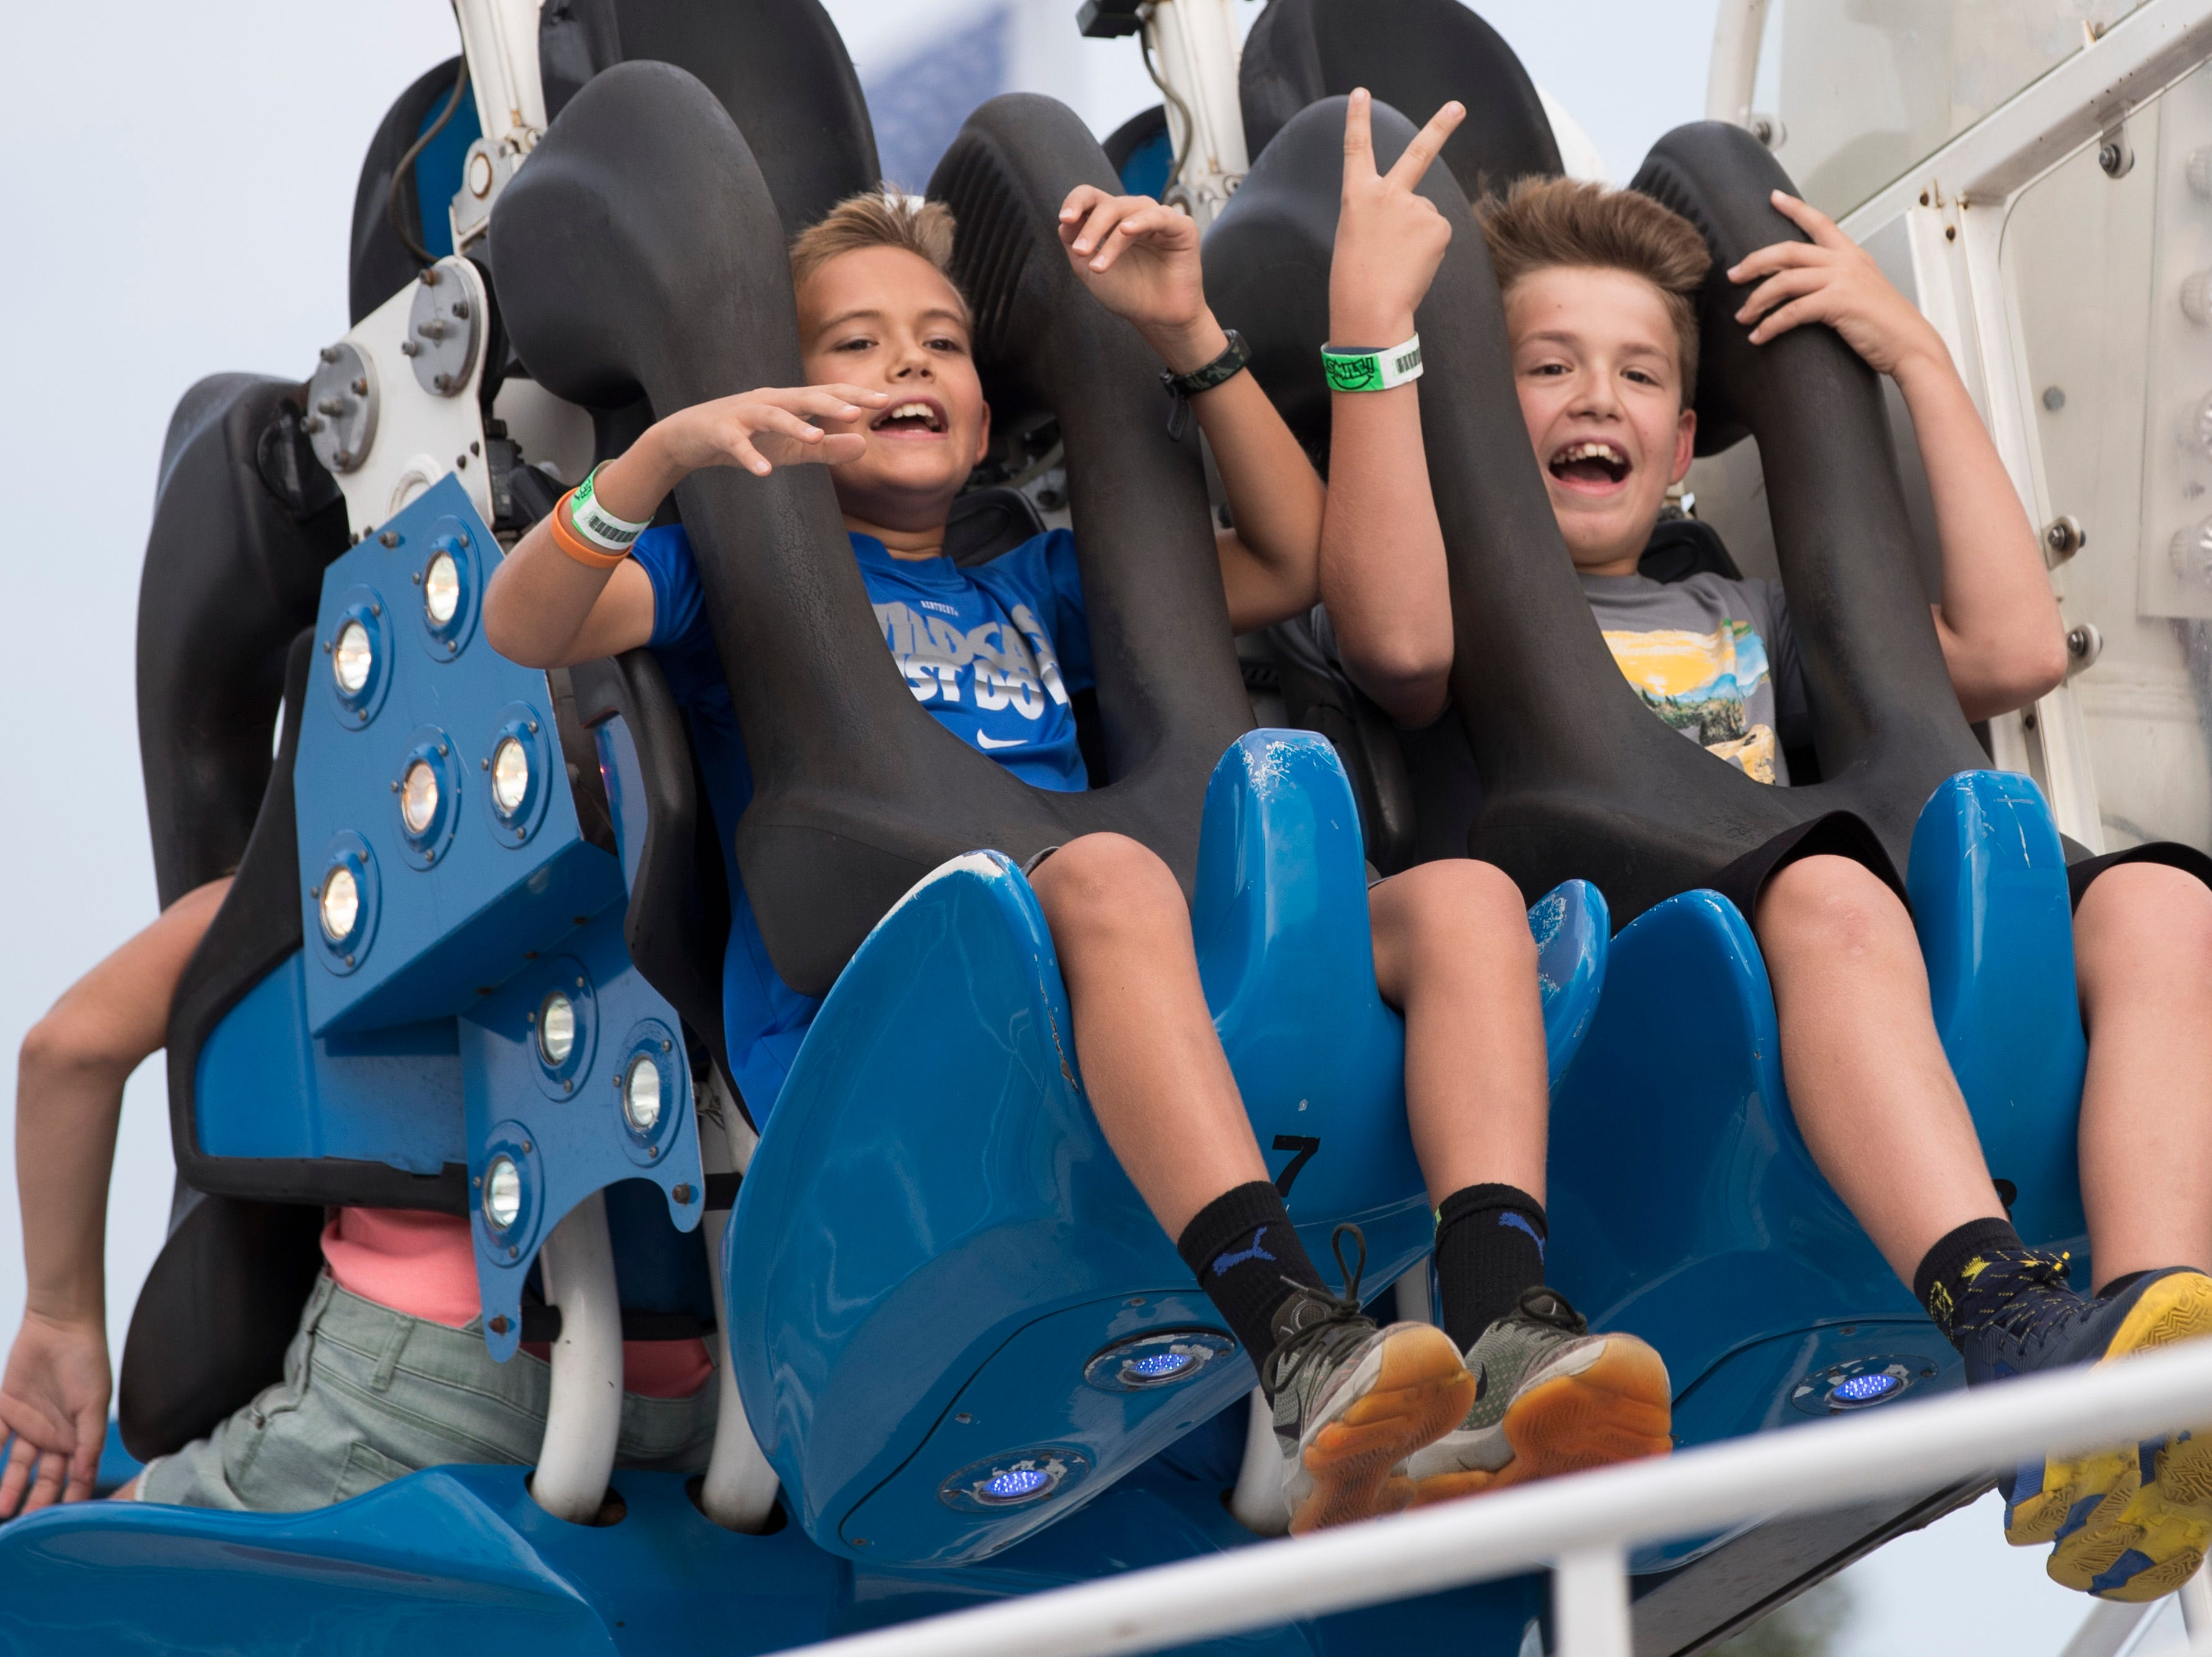 Evan Callaway, left, and brother Chase Callaway ride on Speed at the Kentucky State Fair on Monday. Aug. 20, 2018